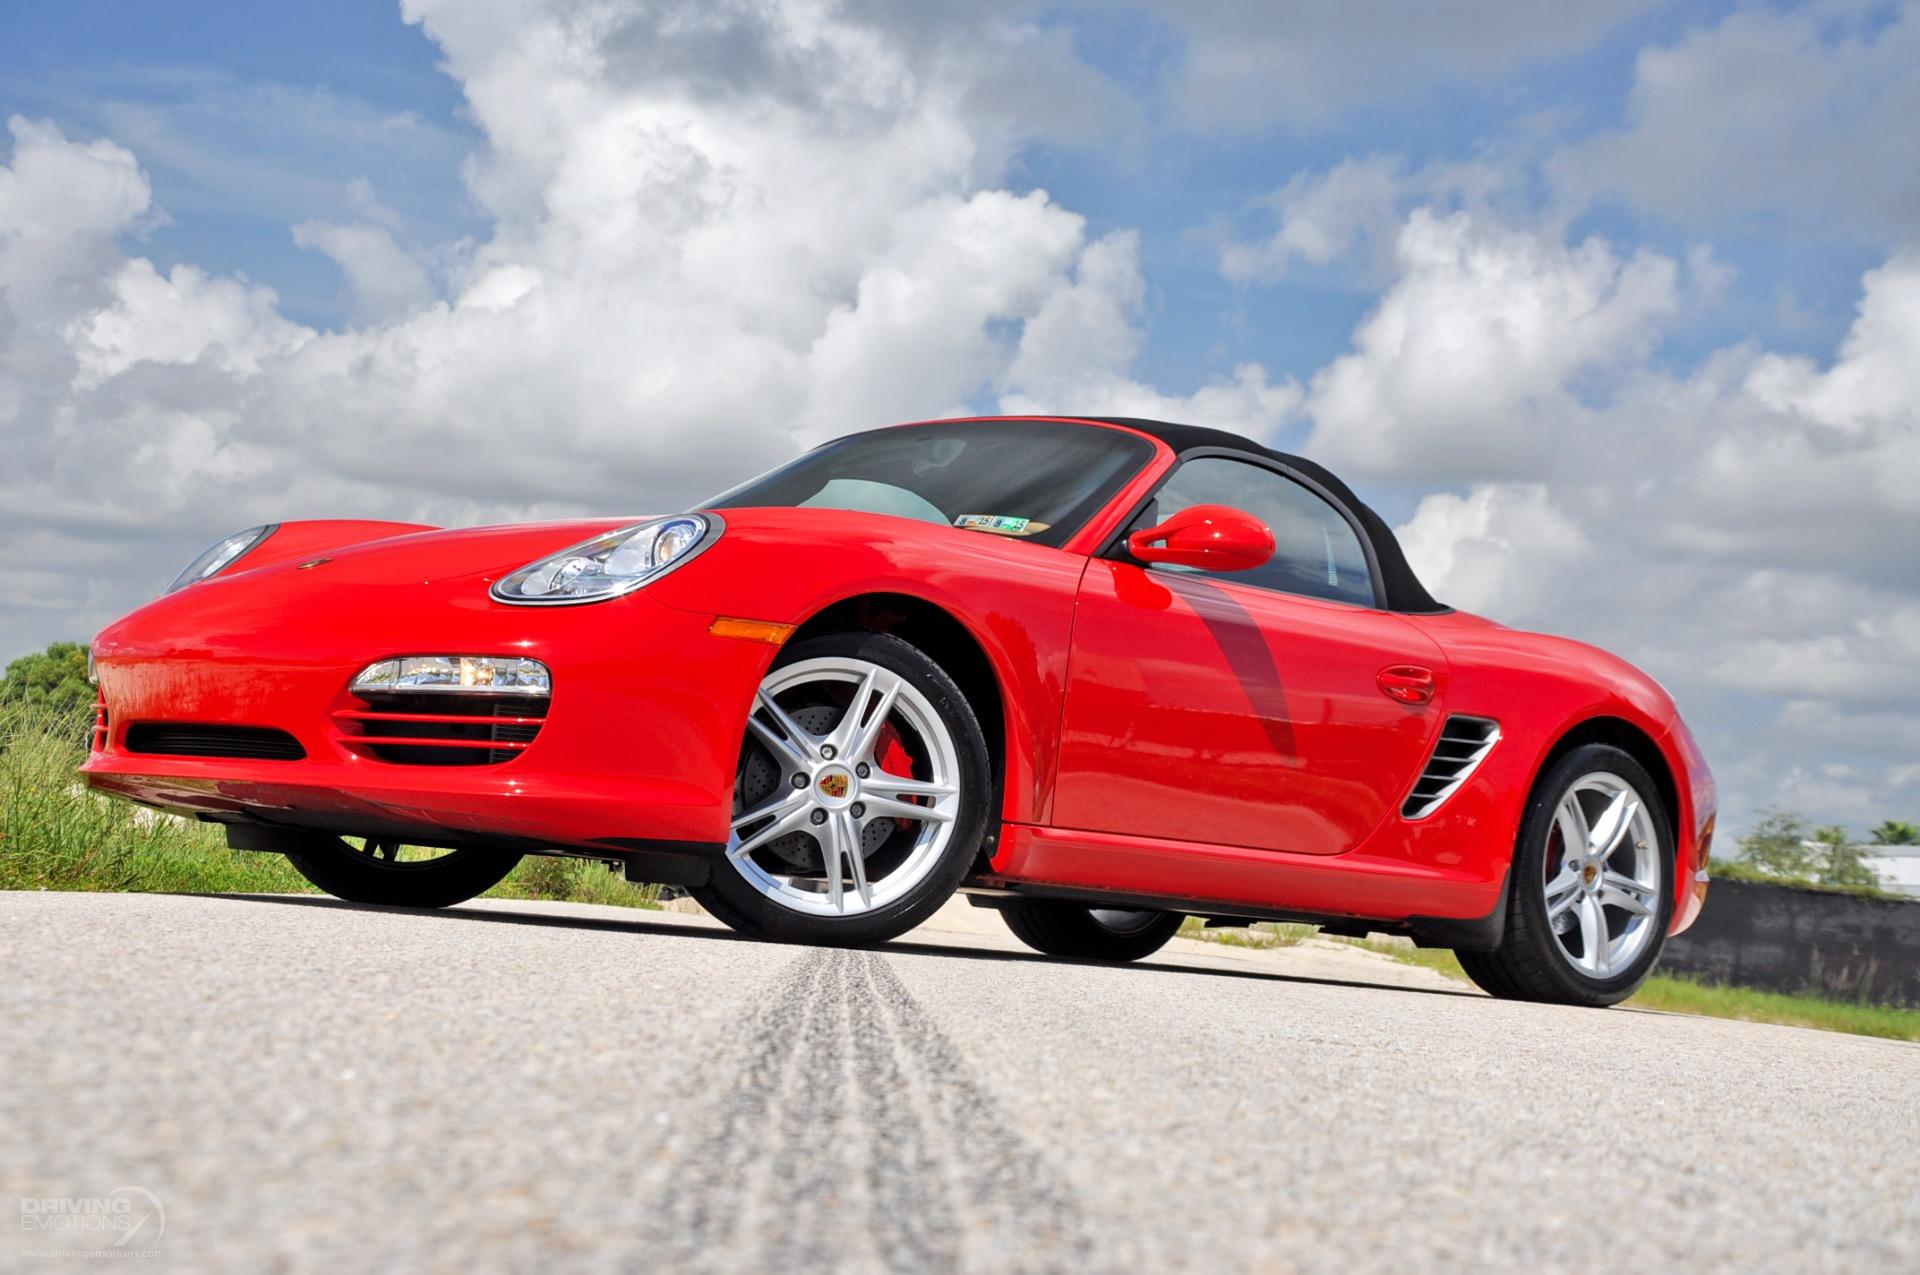 2009 porsche boxster stock 5816 for sale near lake park fl fl porsche dealer. Black Bedroom Furniture Sets. Home Design Ideas